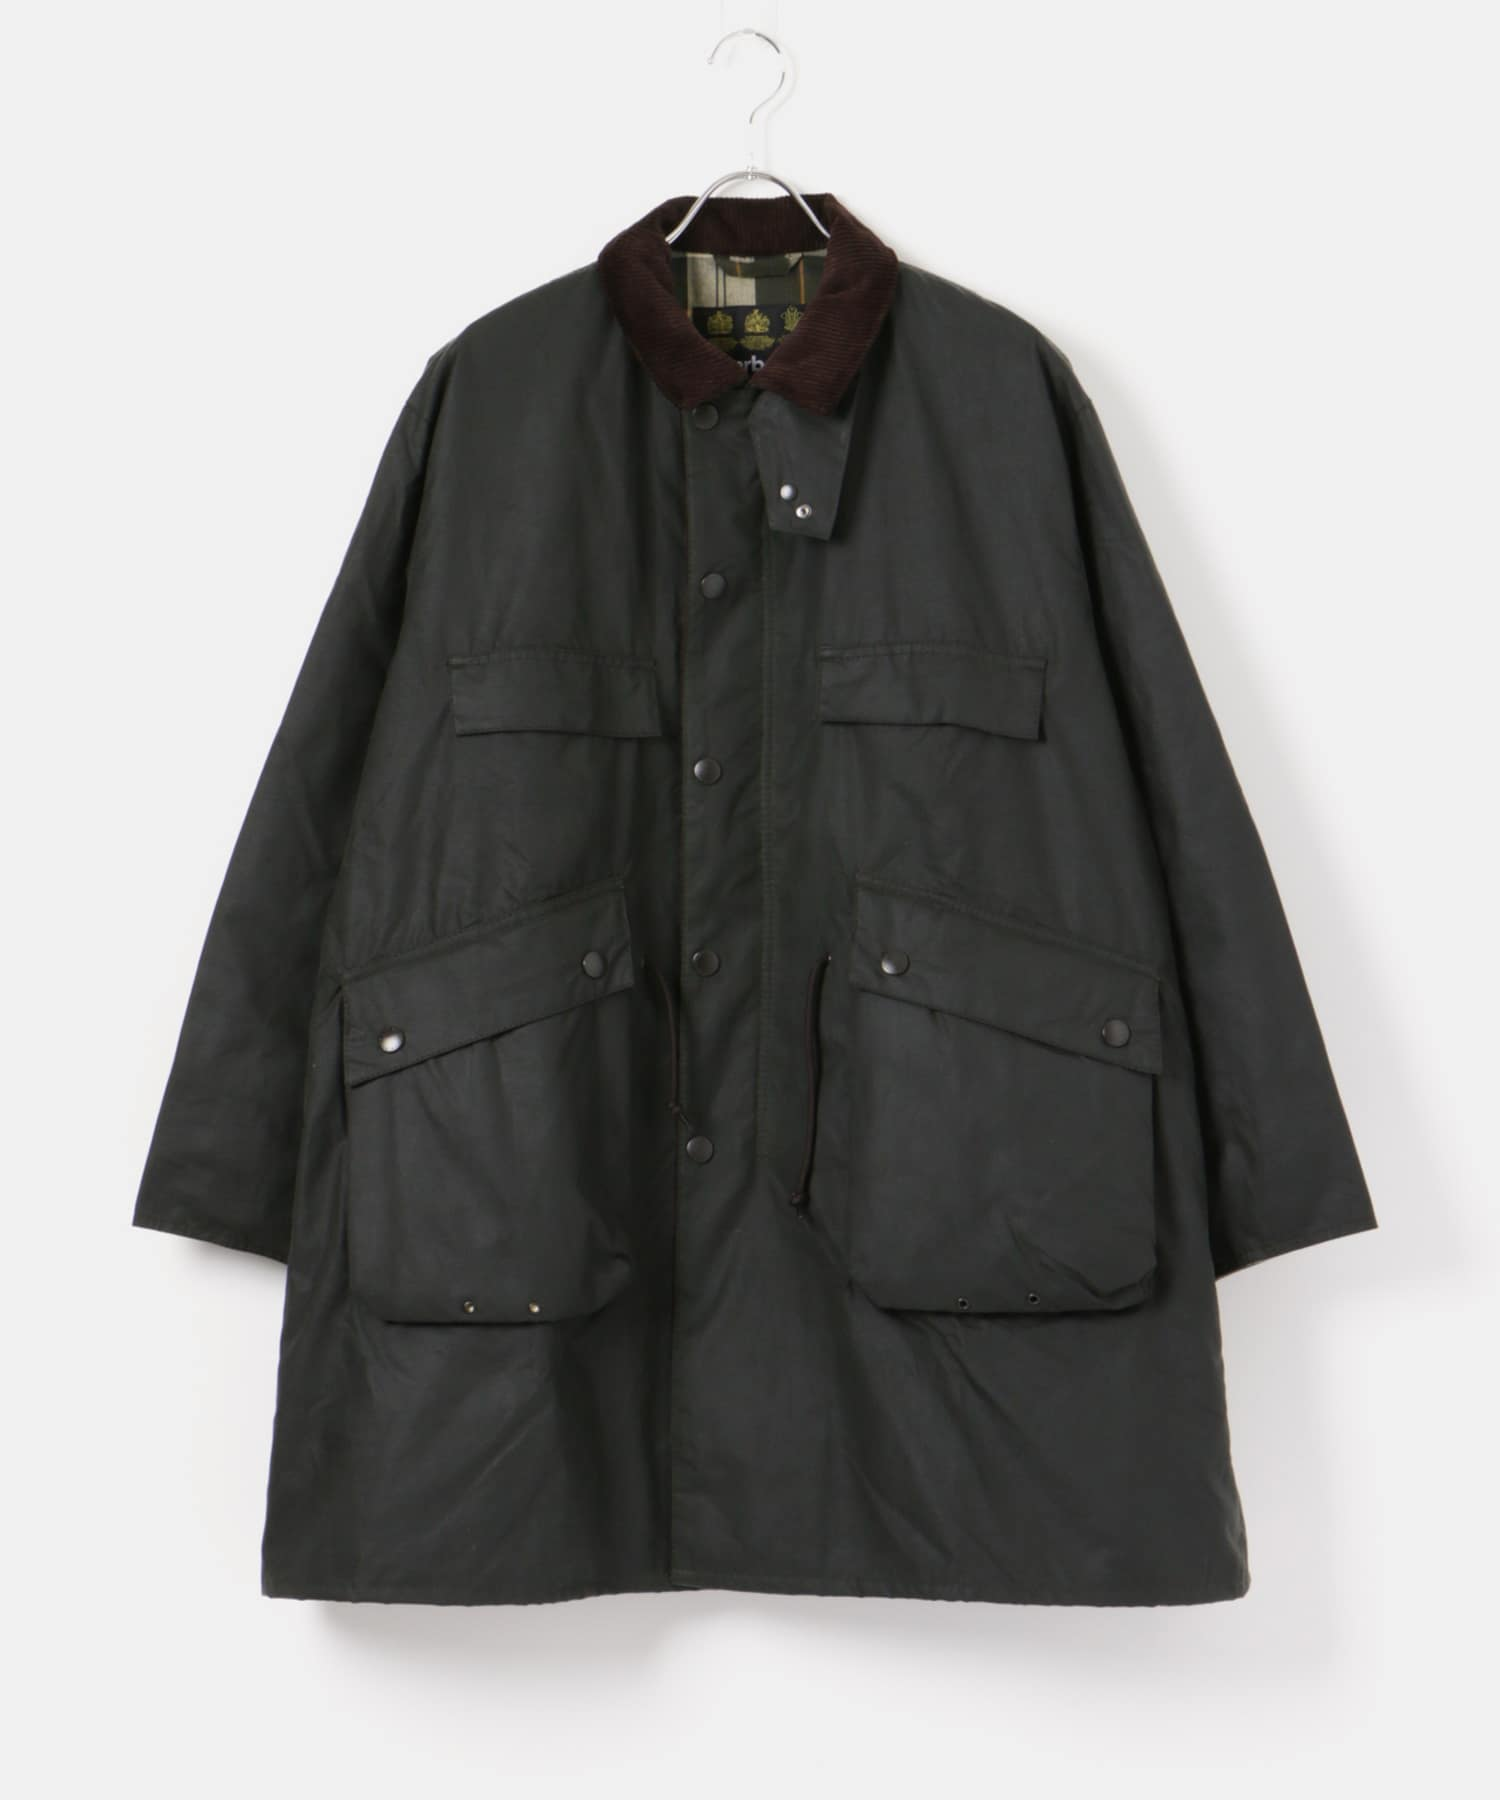 Stand Collar Traveller Coat KS9FBB01 Field Coat MWX1452: Sage, Black